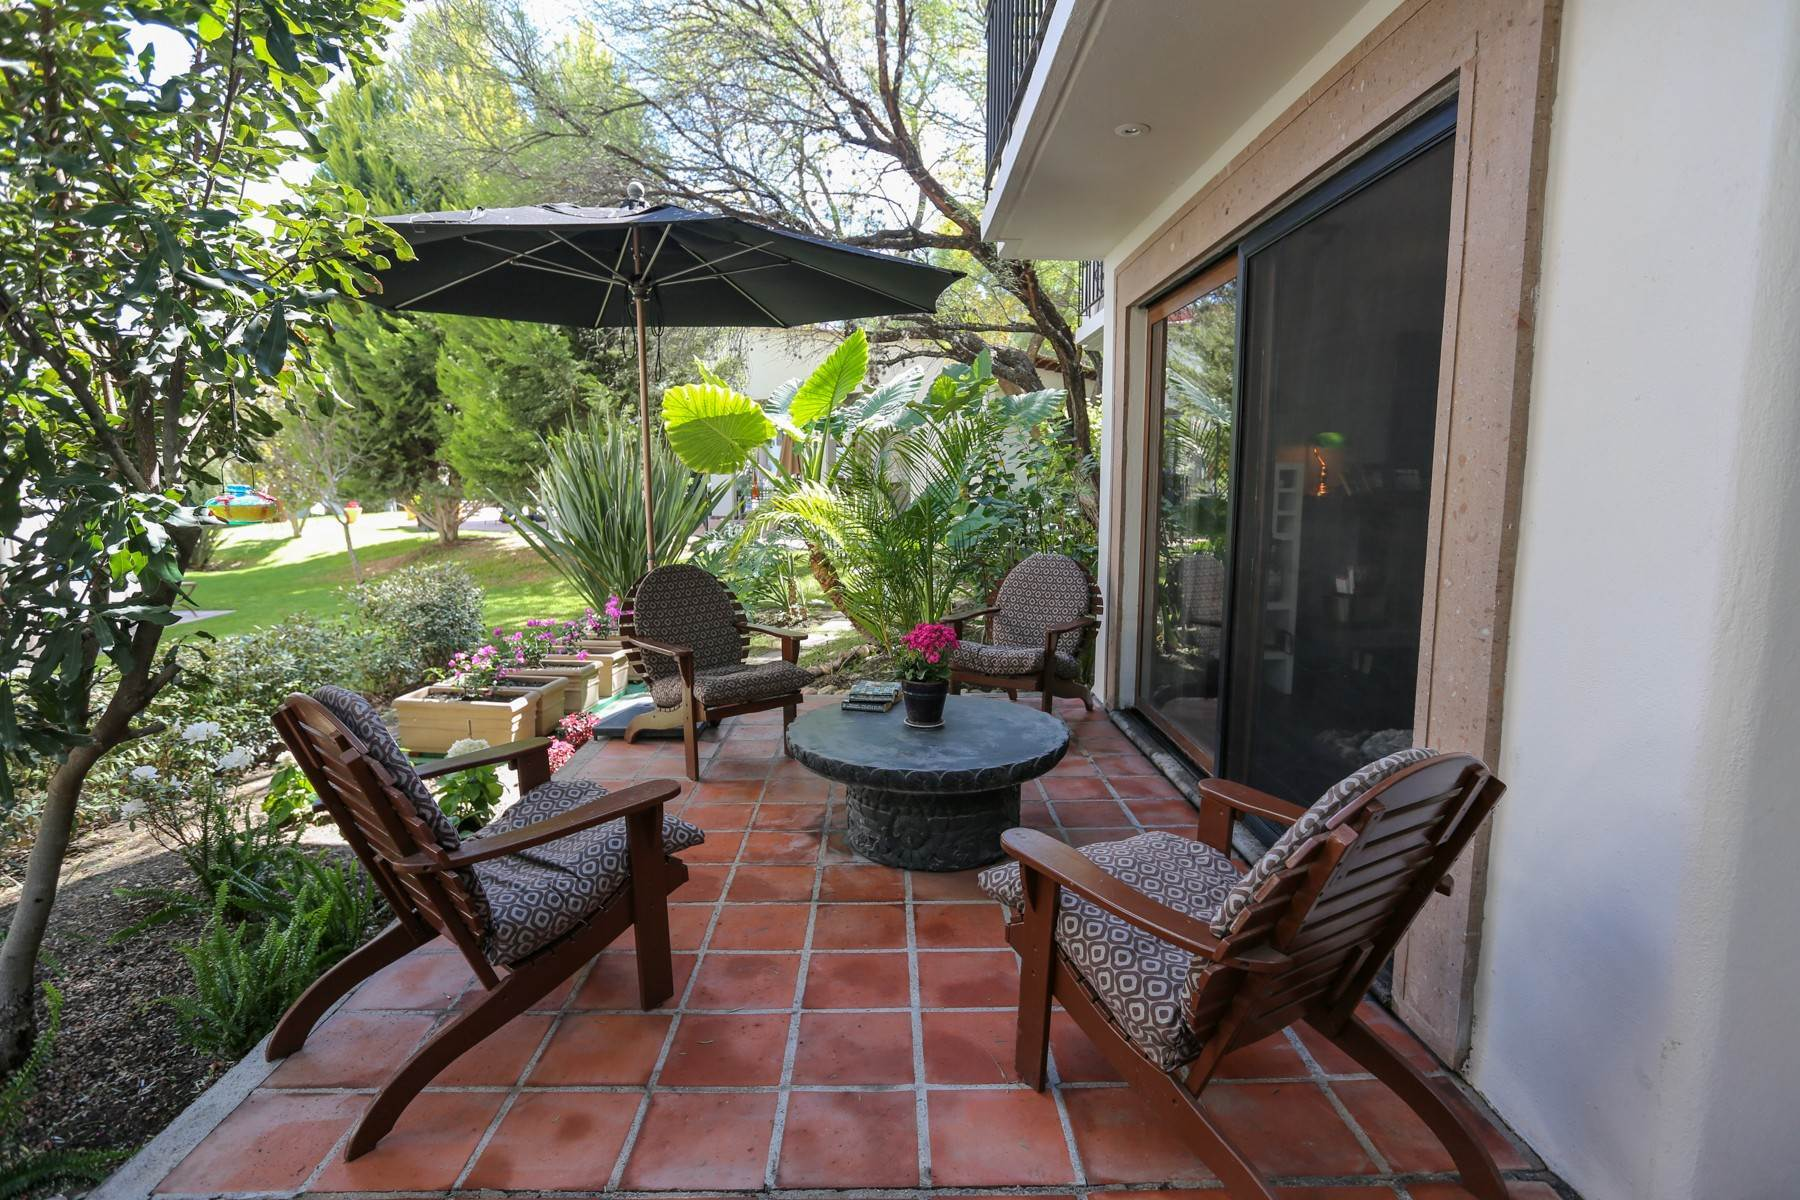 Single Family Homes for Sale at Puente Viejo Calzada de la Aurora 52, Condo F-1 San Miguel De Allende, Guanajuato 37710 Mexico